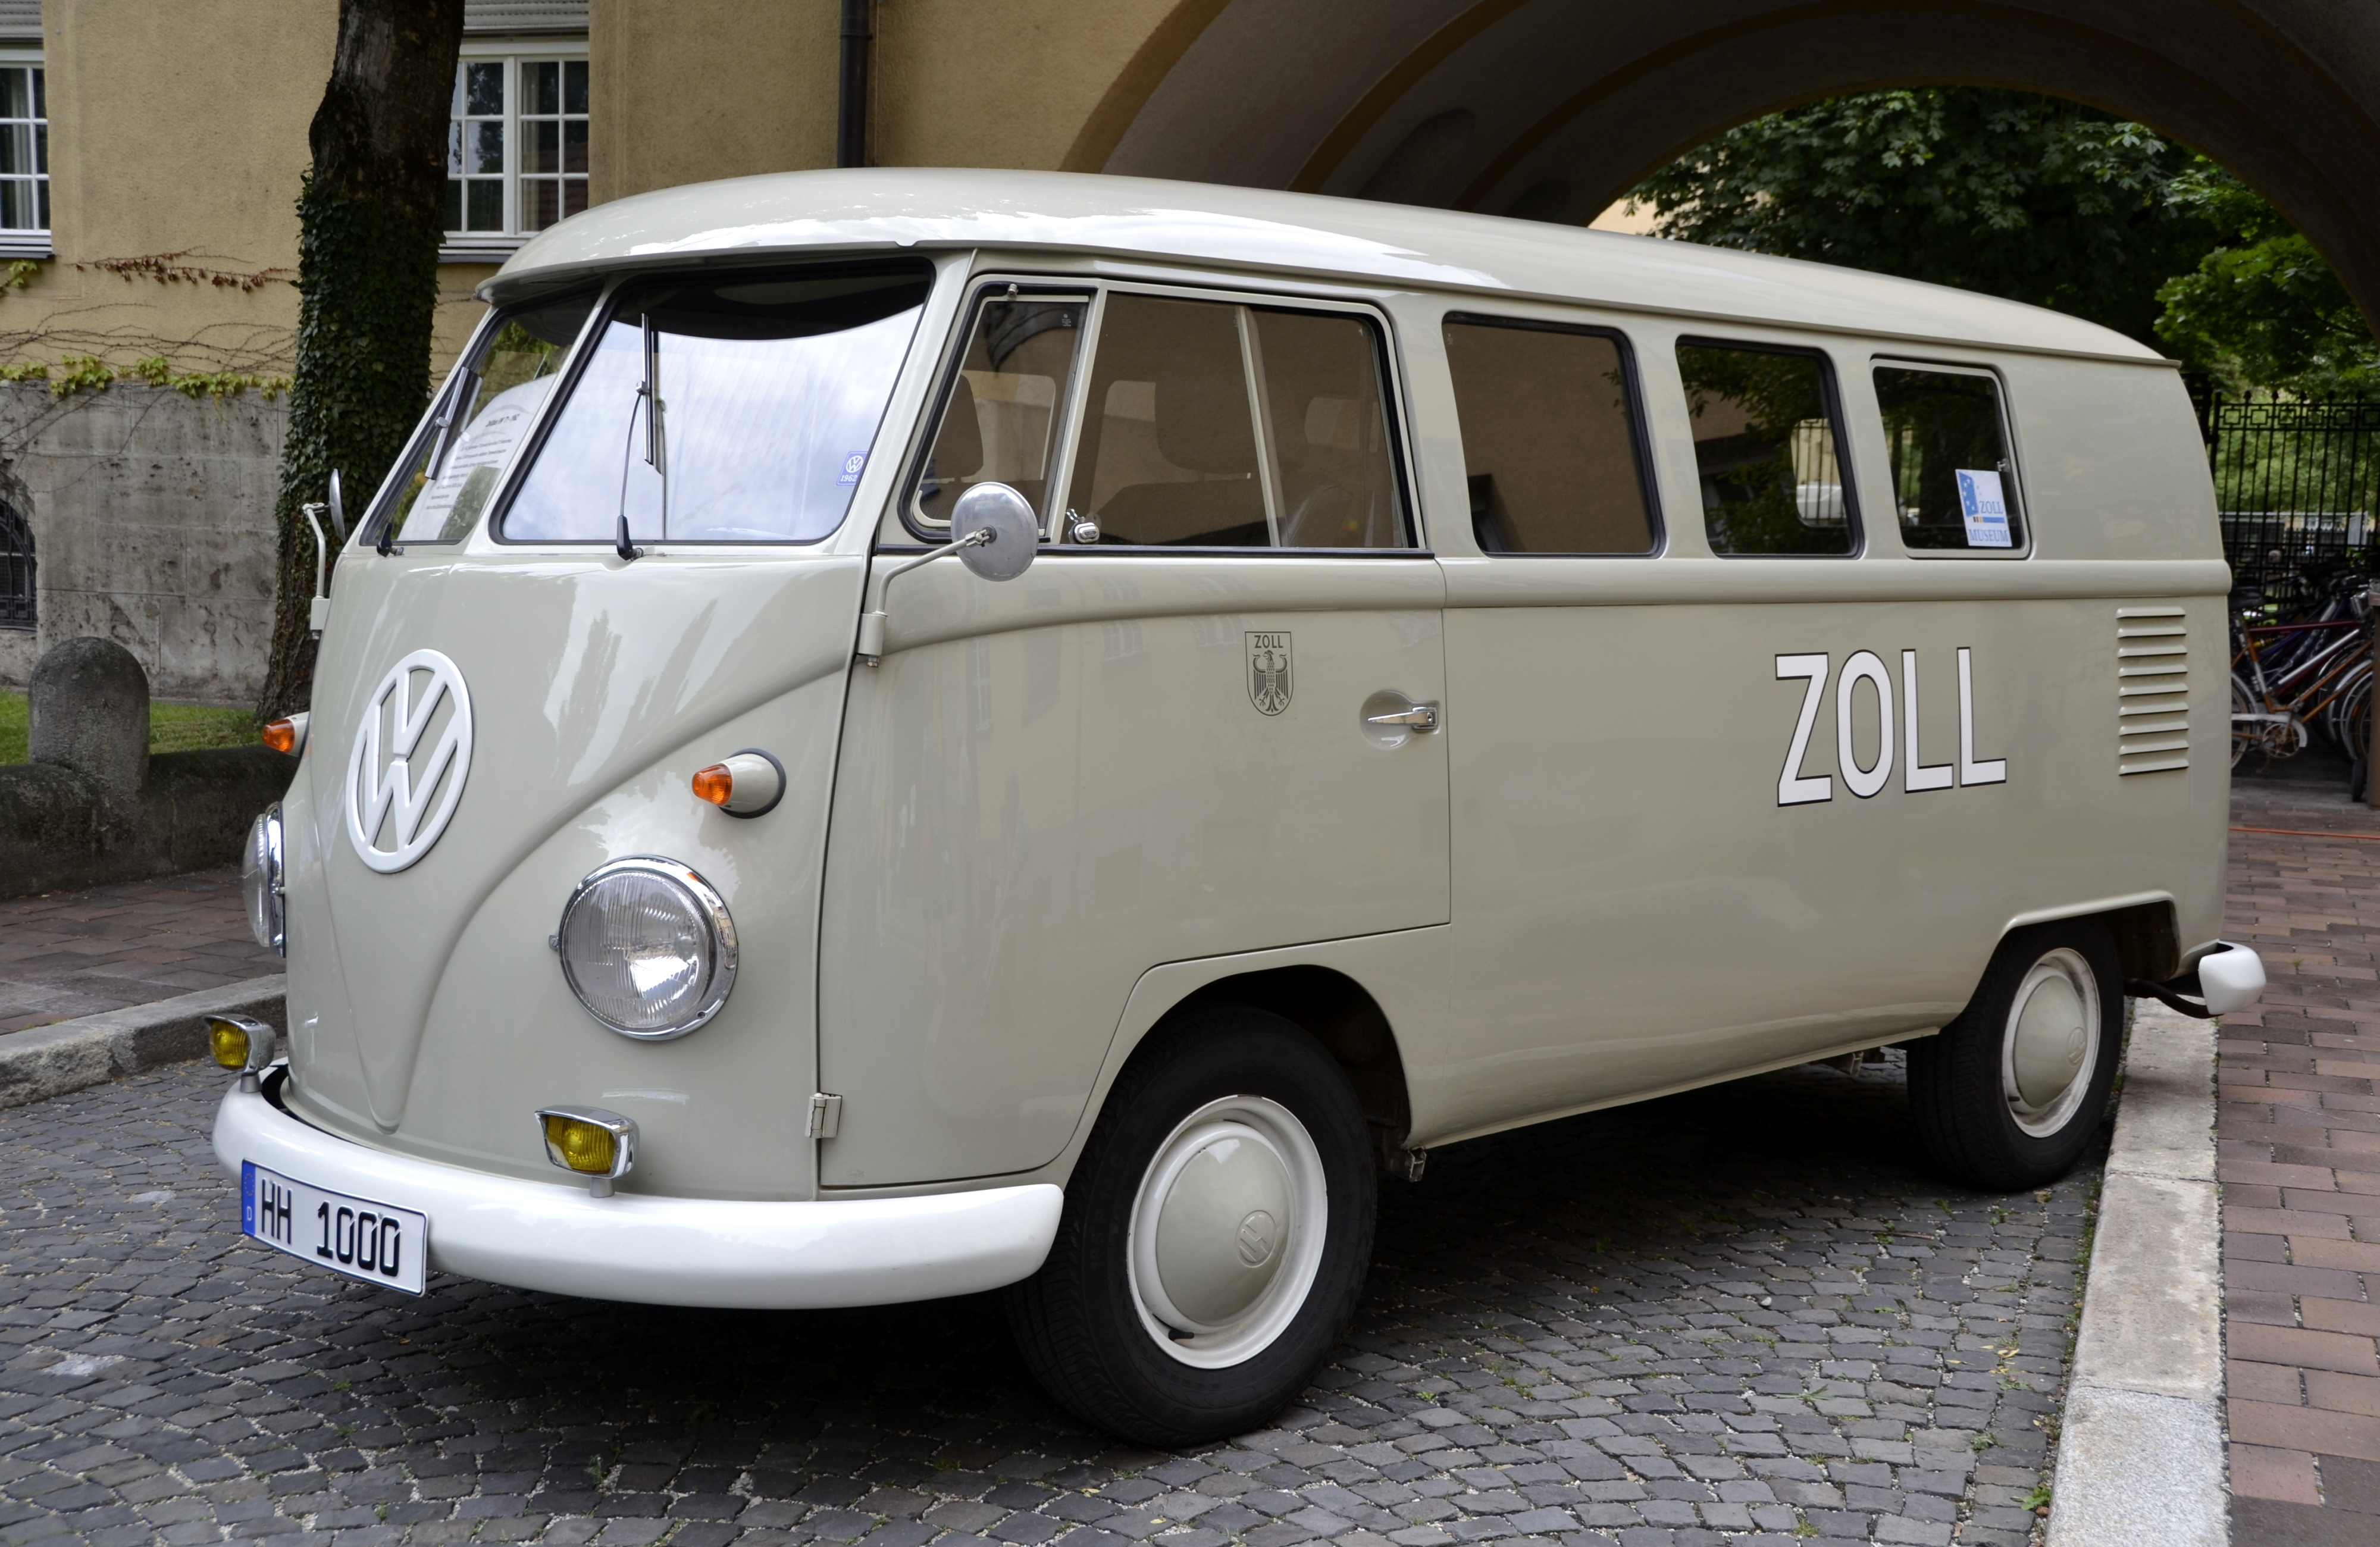 file zollbus vw t1 from 1962 jpg wikimedia commons. Black Bedroom Furniture Sets. Home Design Ideas